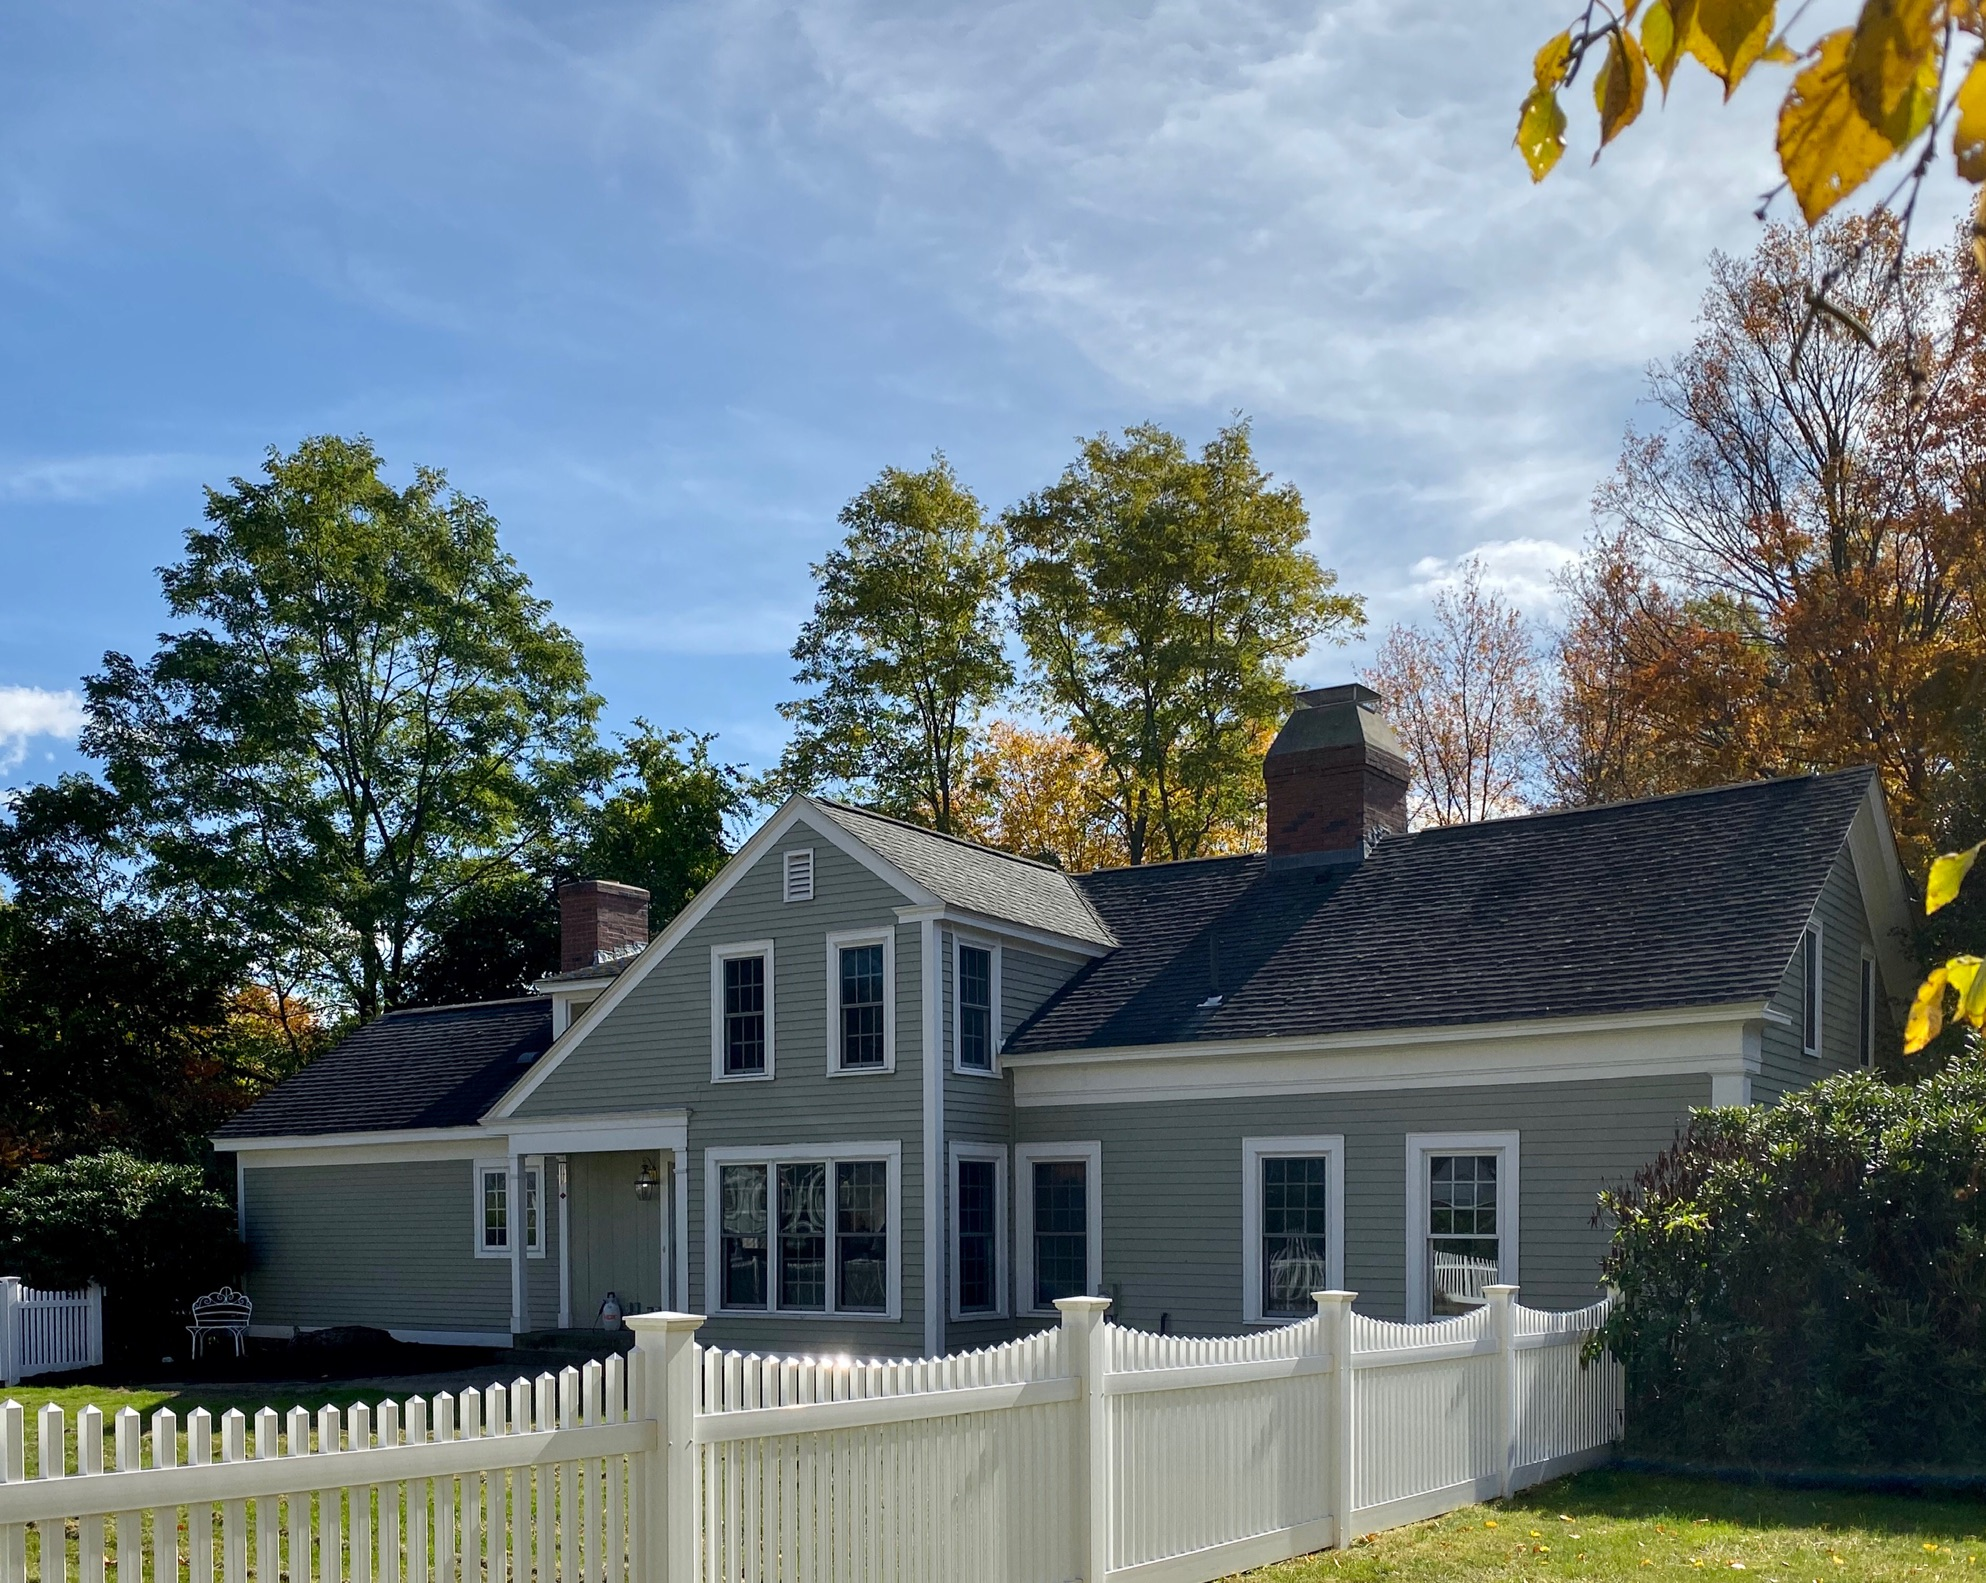 Home for sale Greenfield Massachusetts